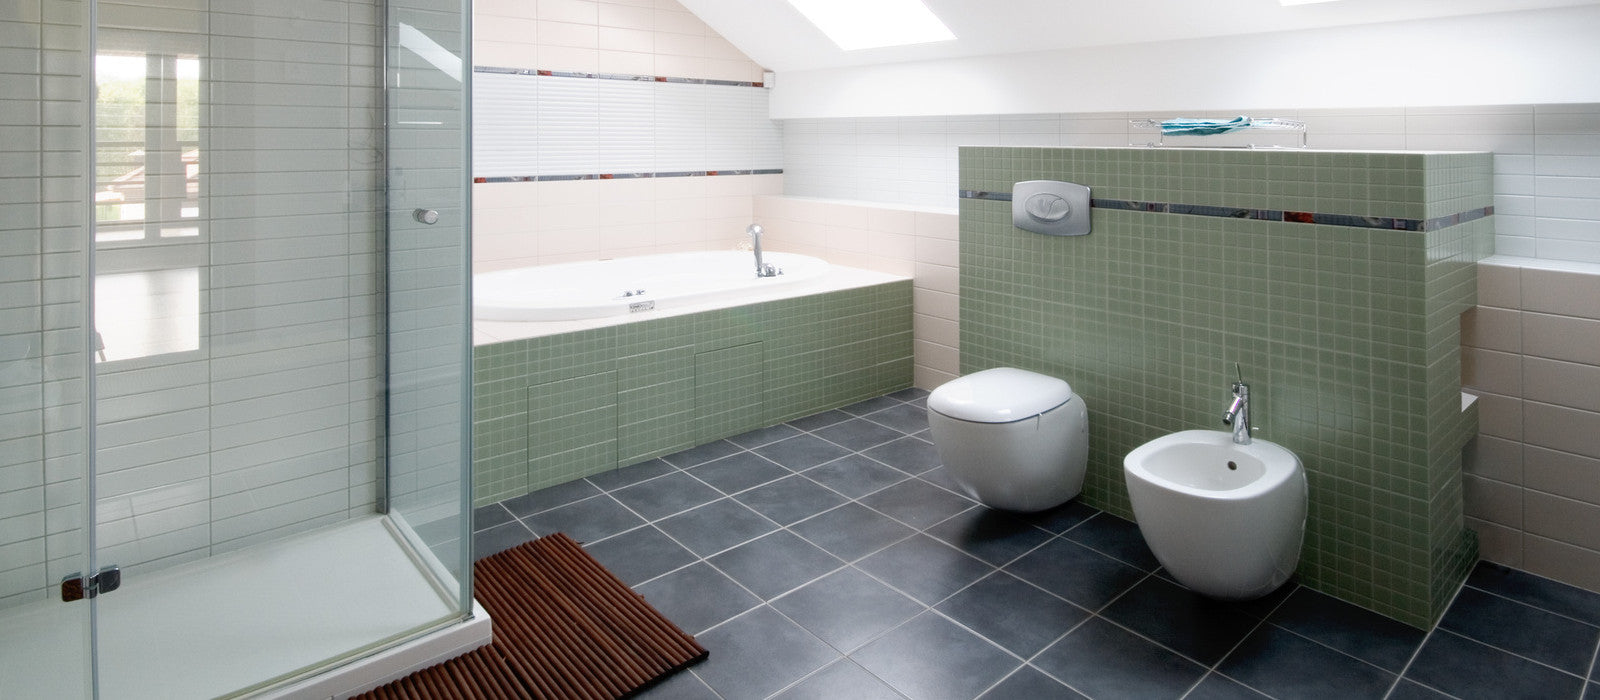 Lancashire's premier tile and bathroom fitters